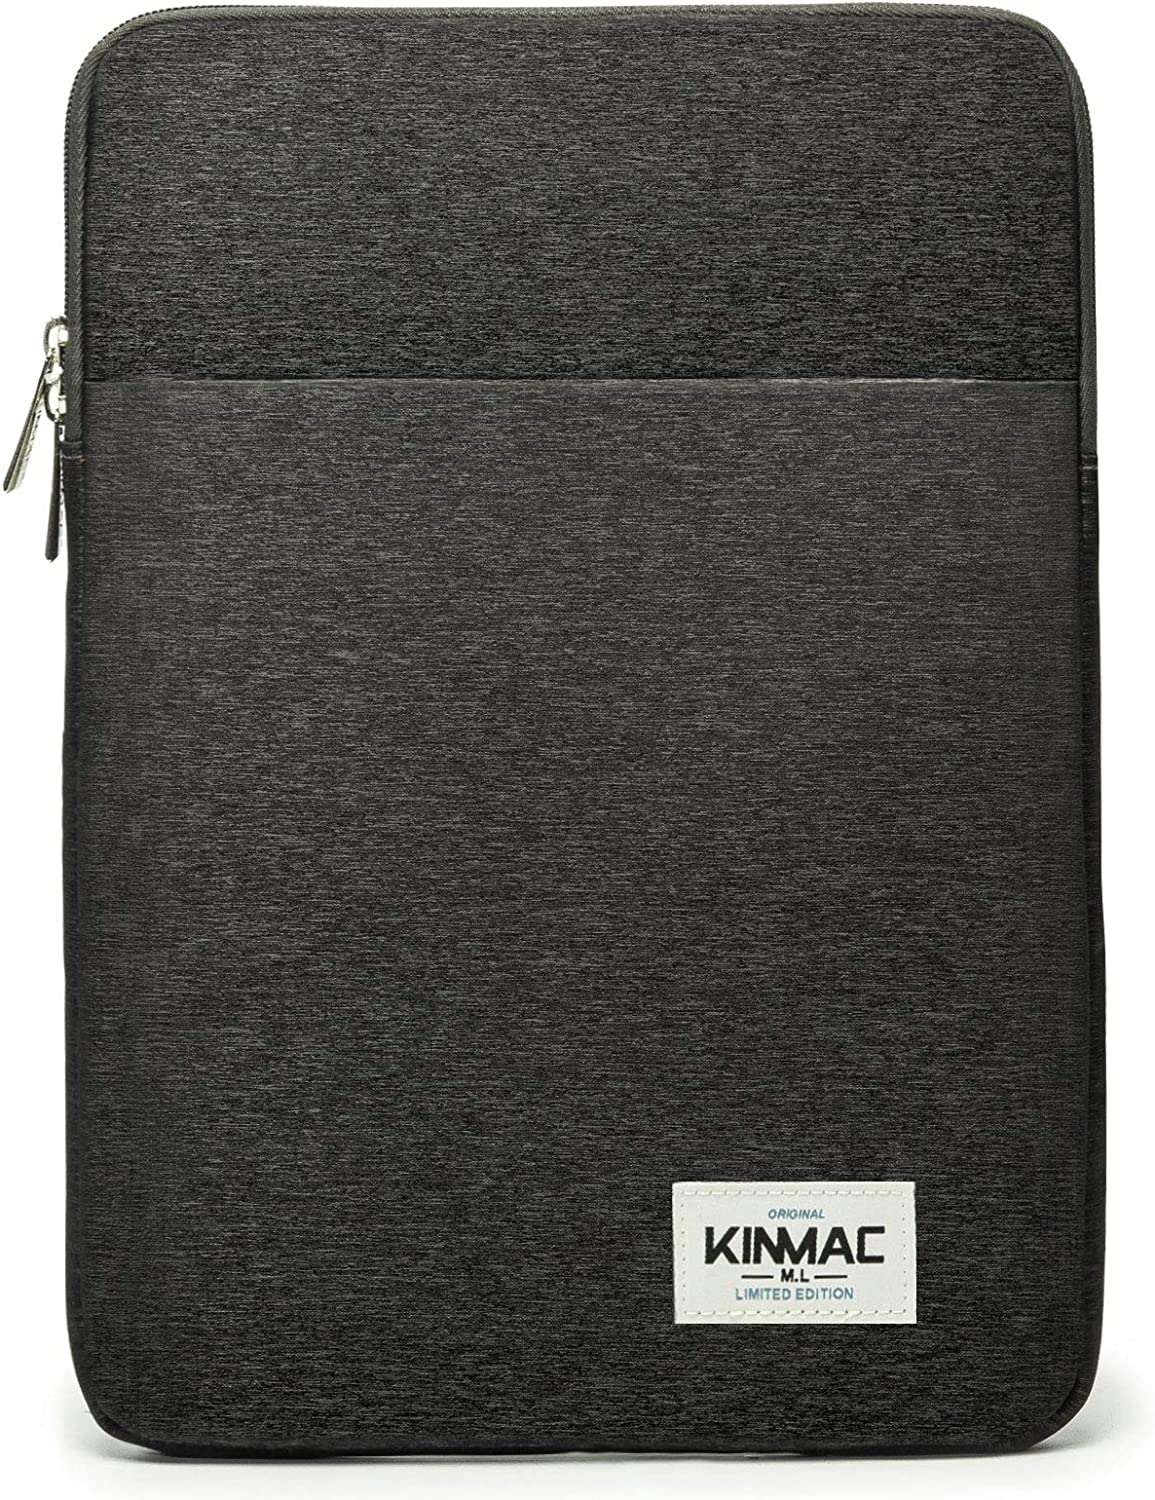 Kinmac Snow Black Color 360 Degree Protective Vertical Style Waterproof Laptop Sleeve with Pocket (15 inch-15.6 inch)